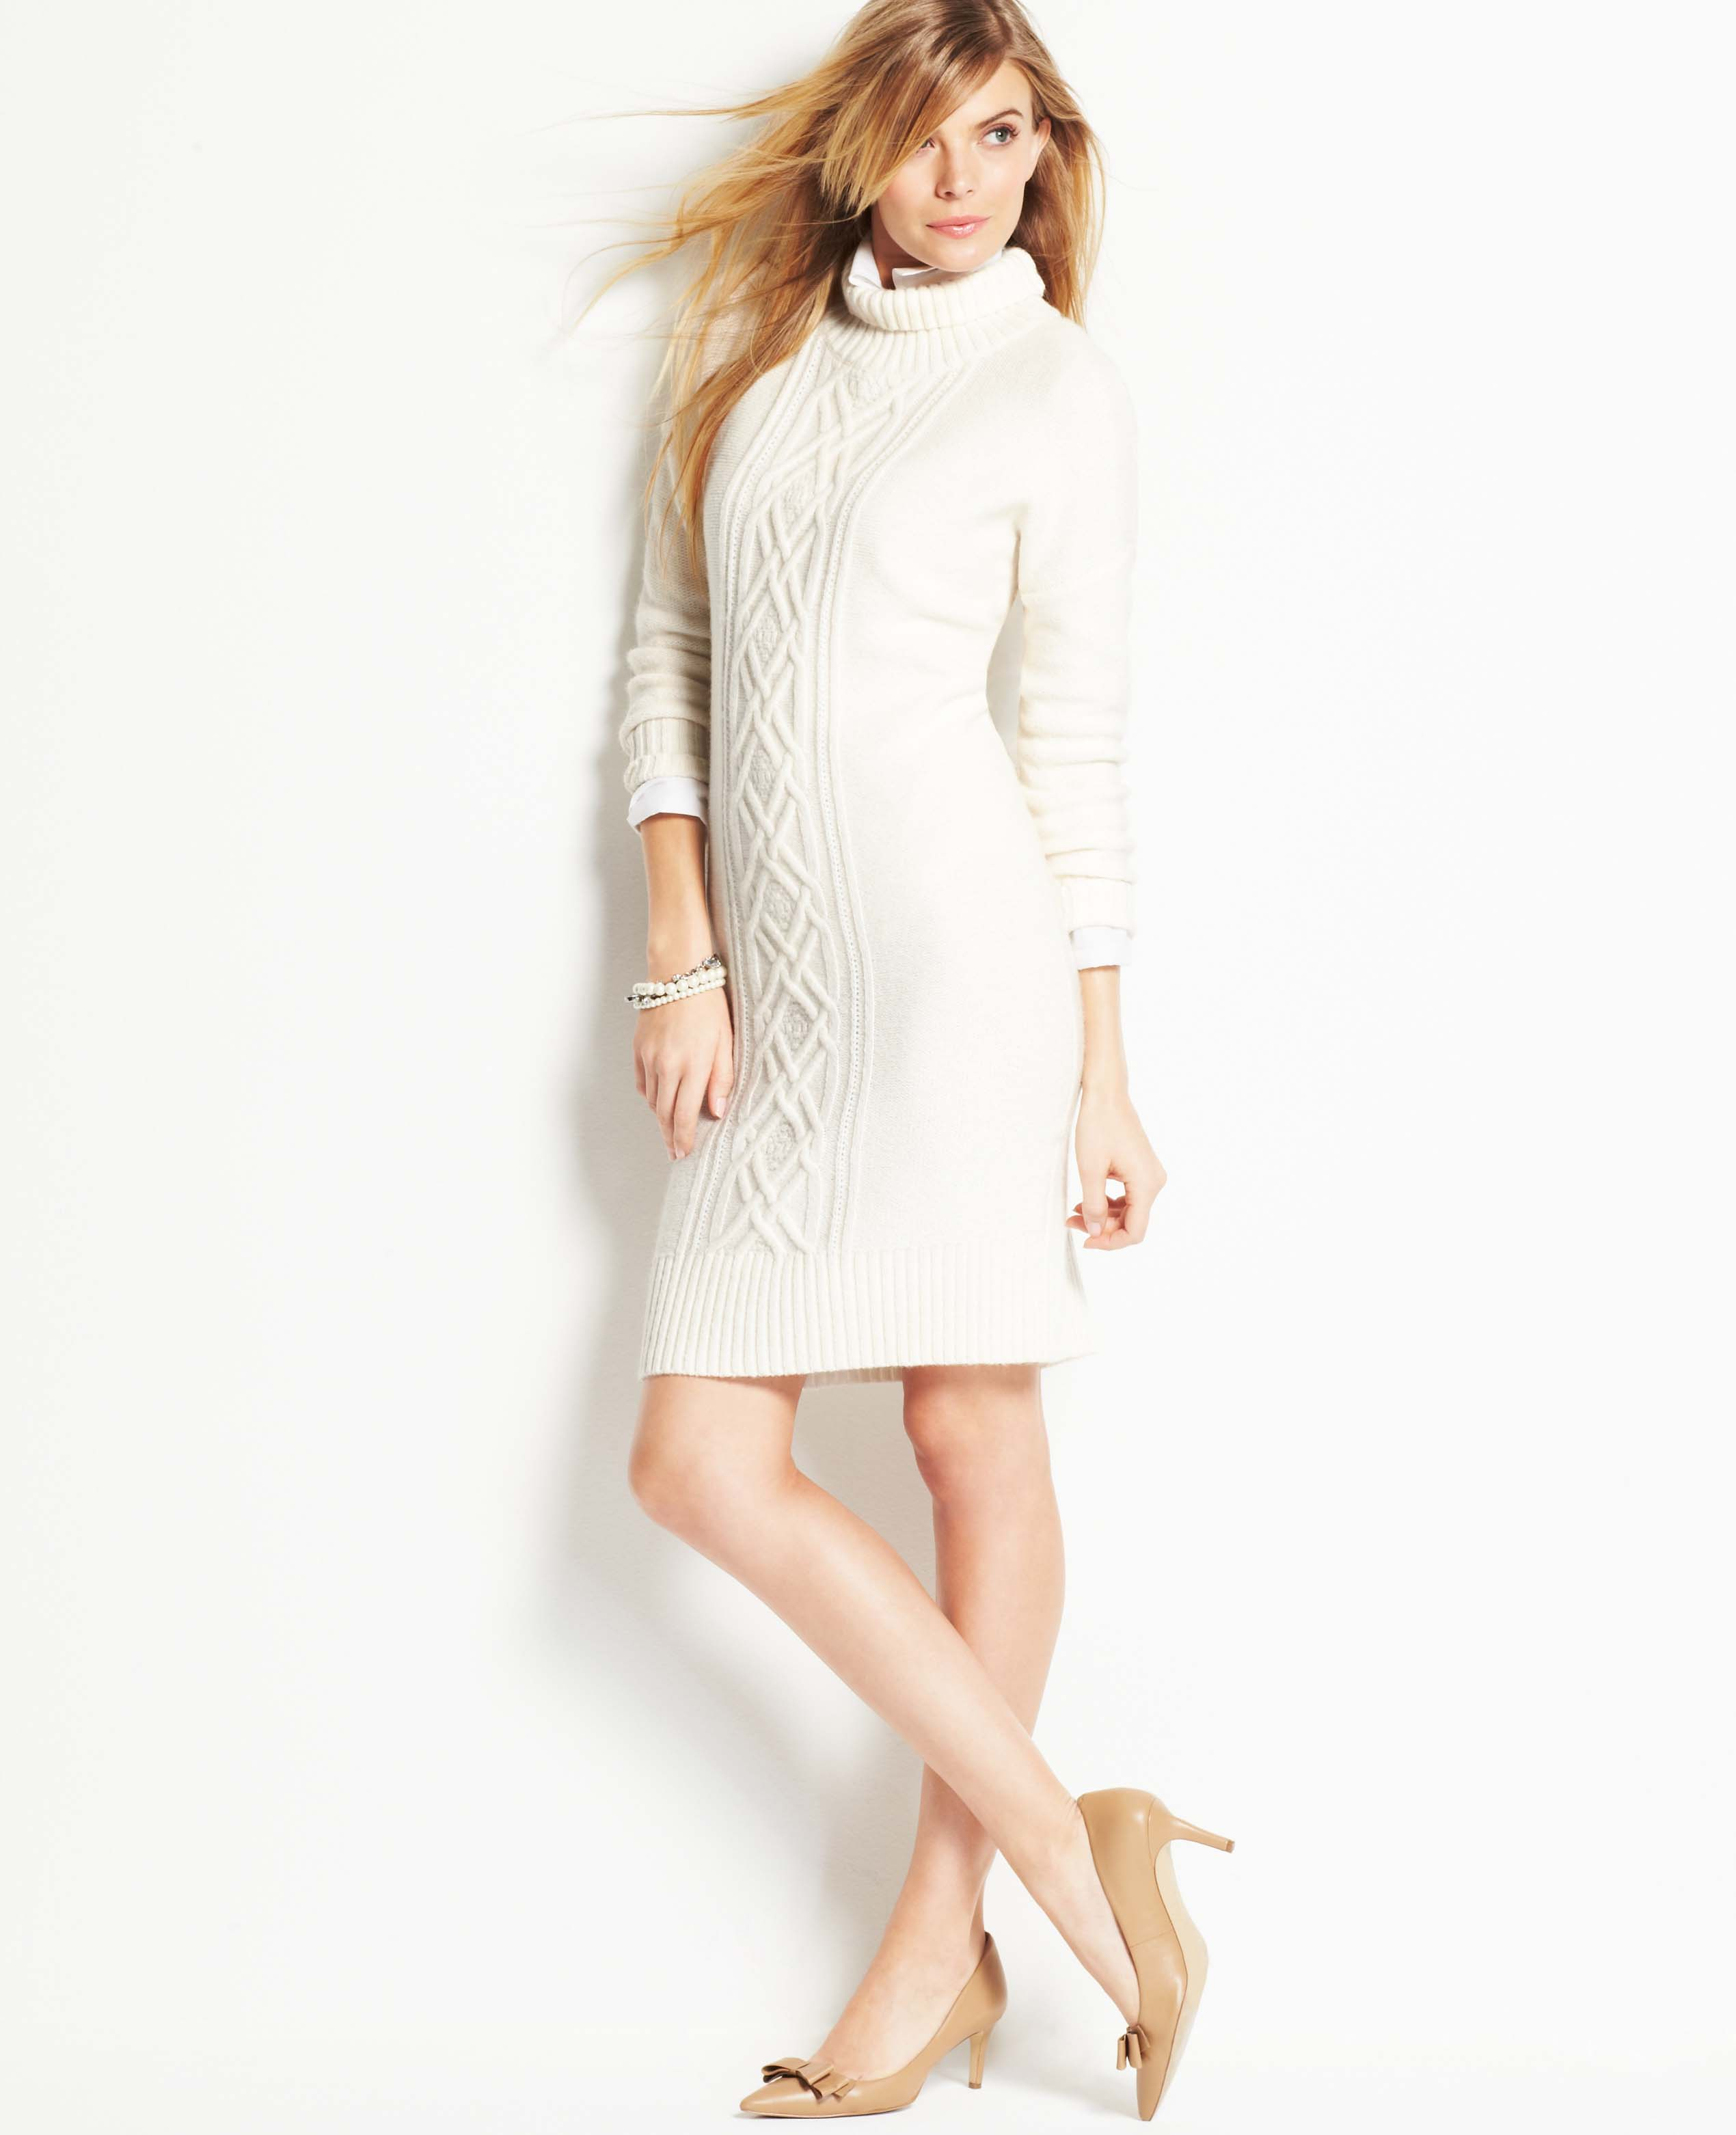 Sweater Cable dress pictures catalog photo